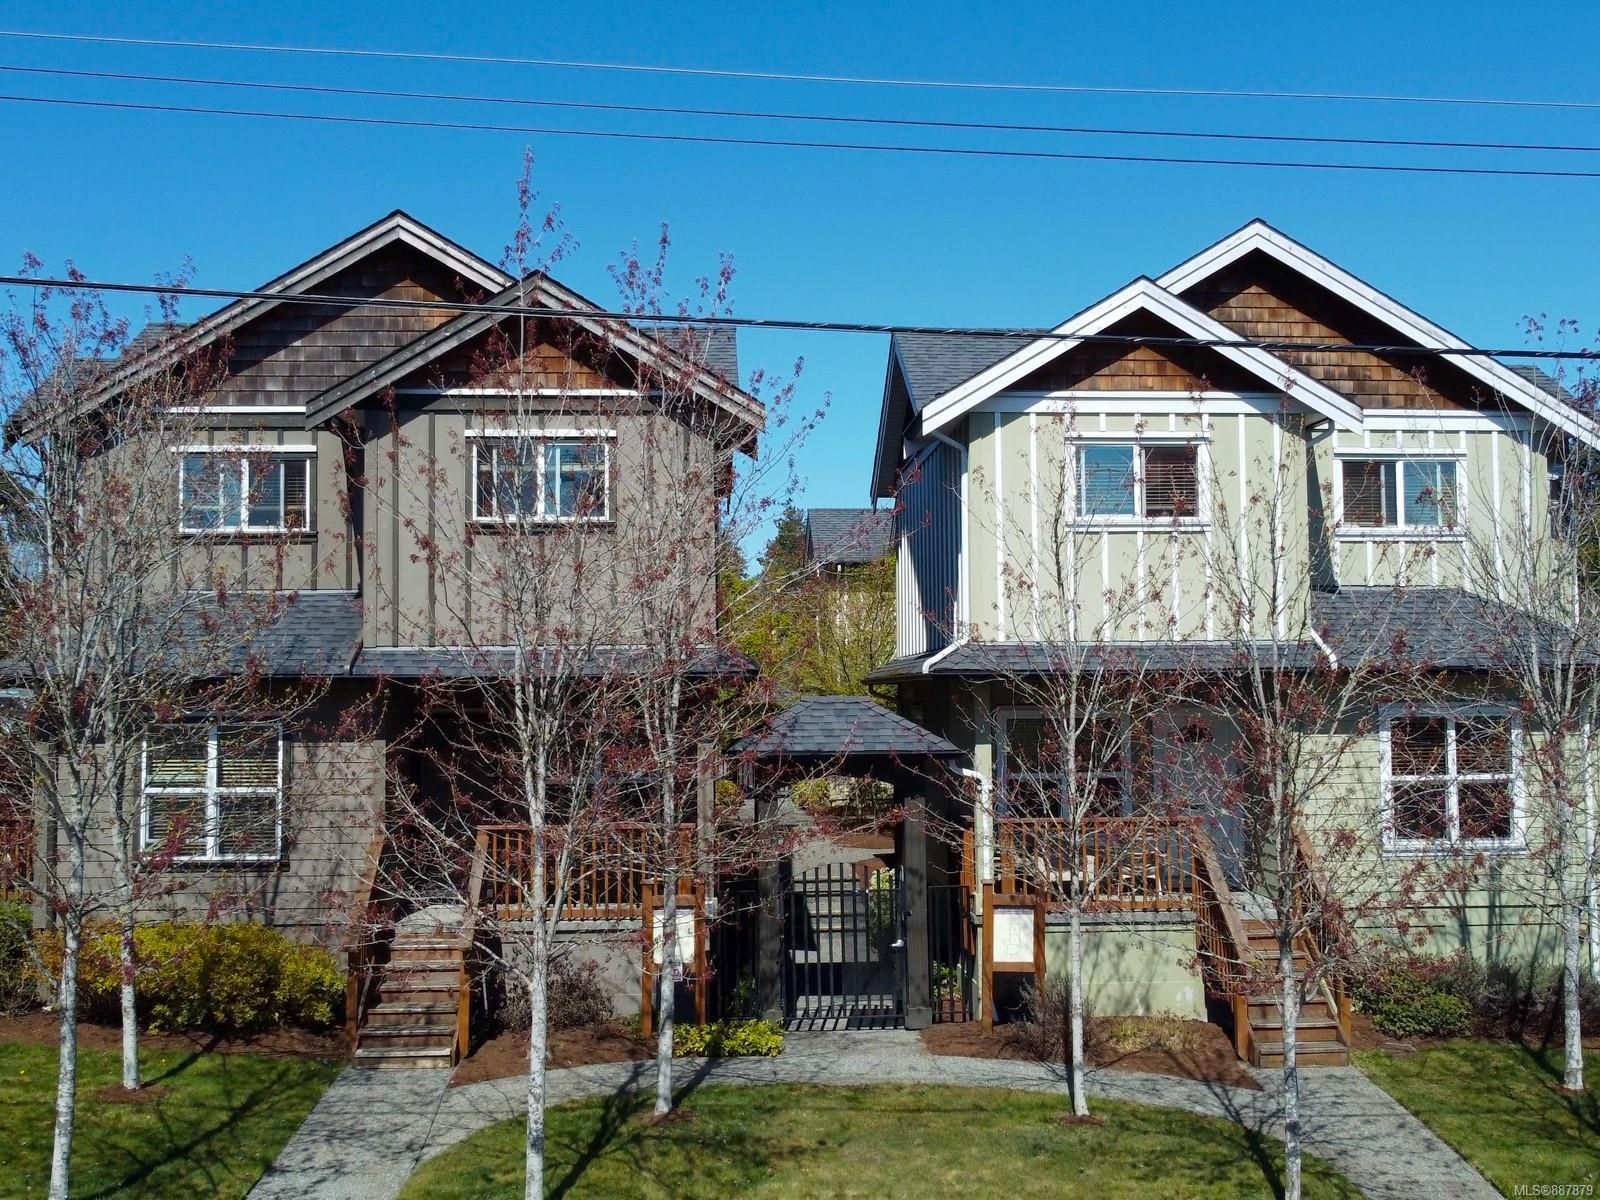 Main Photo: 101 582 Rosehill St in : Na Central Nanaimo Row/Townhouse for sale (Nanaimo)  : MLS®# 887879